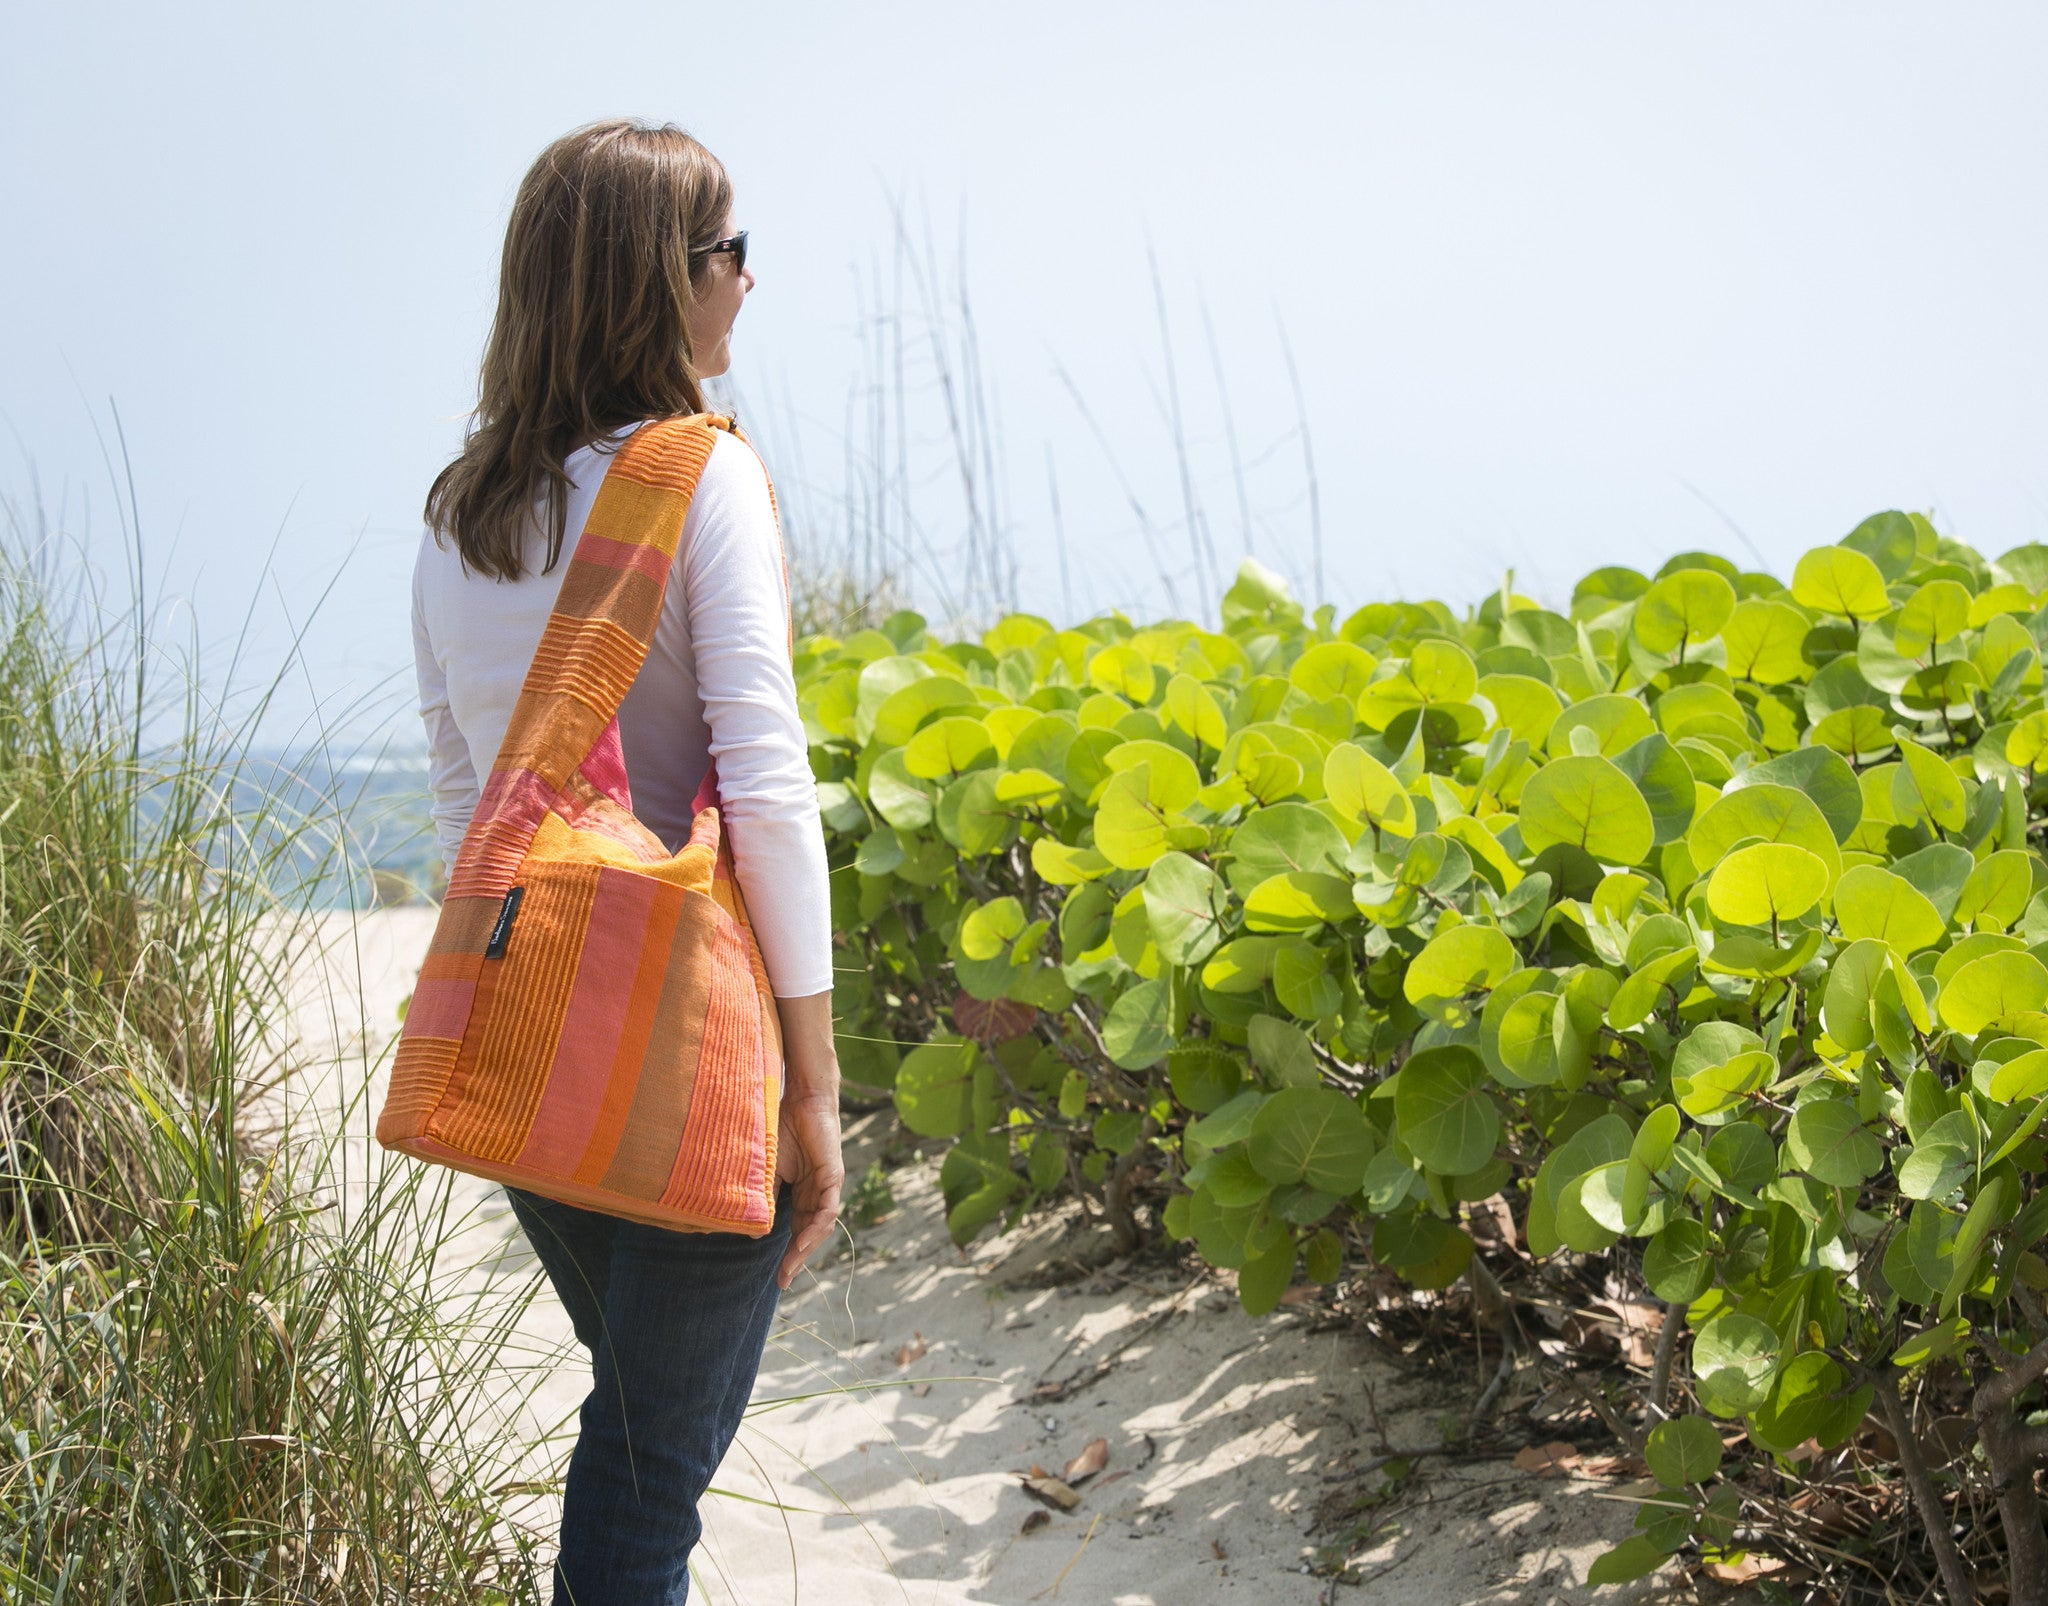 The Versatile Shoulder Bag - Great for a day at the beach! (Sunset fabric shown in large size)